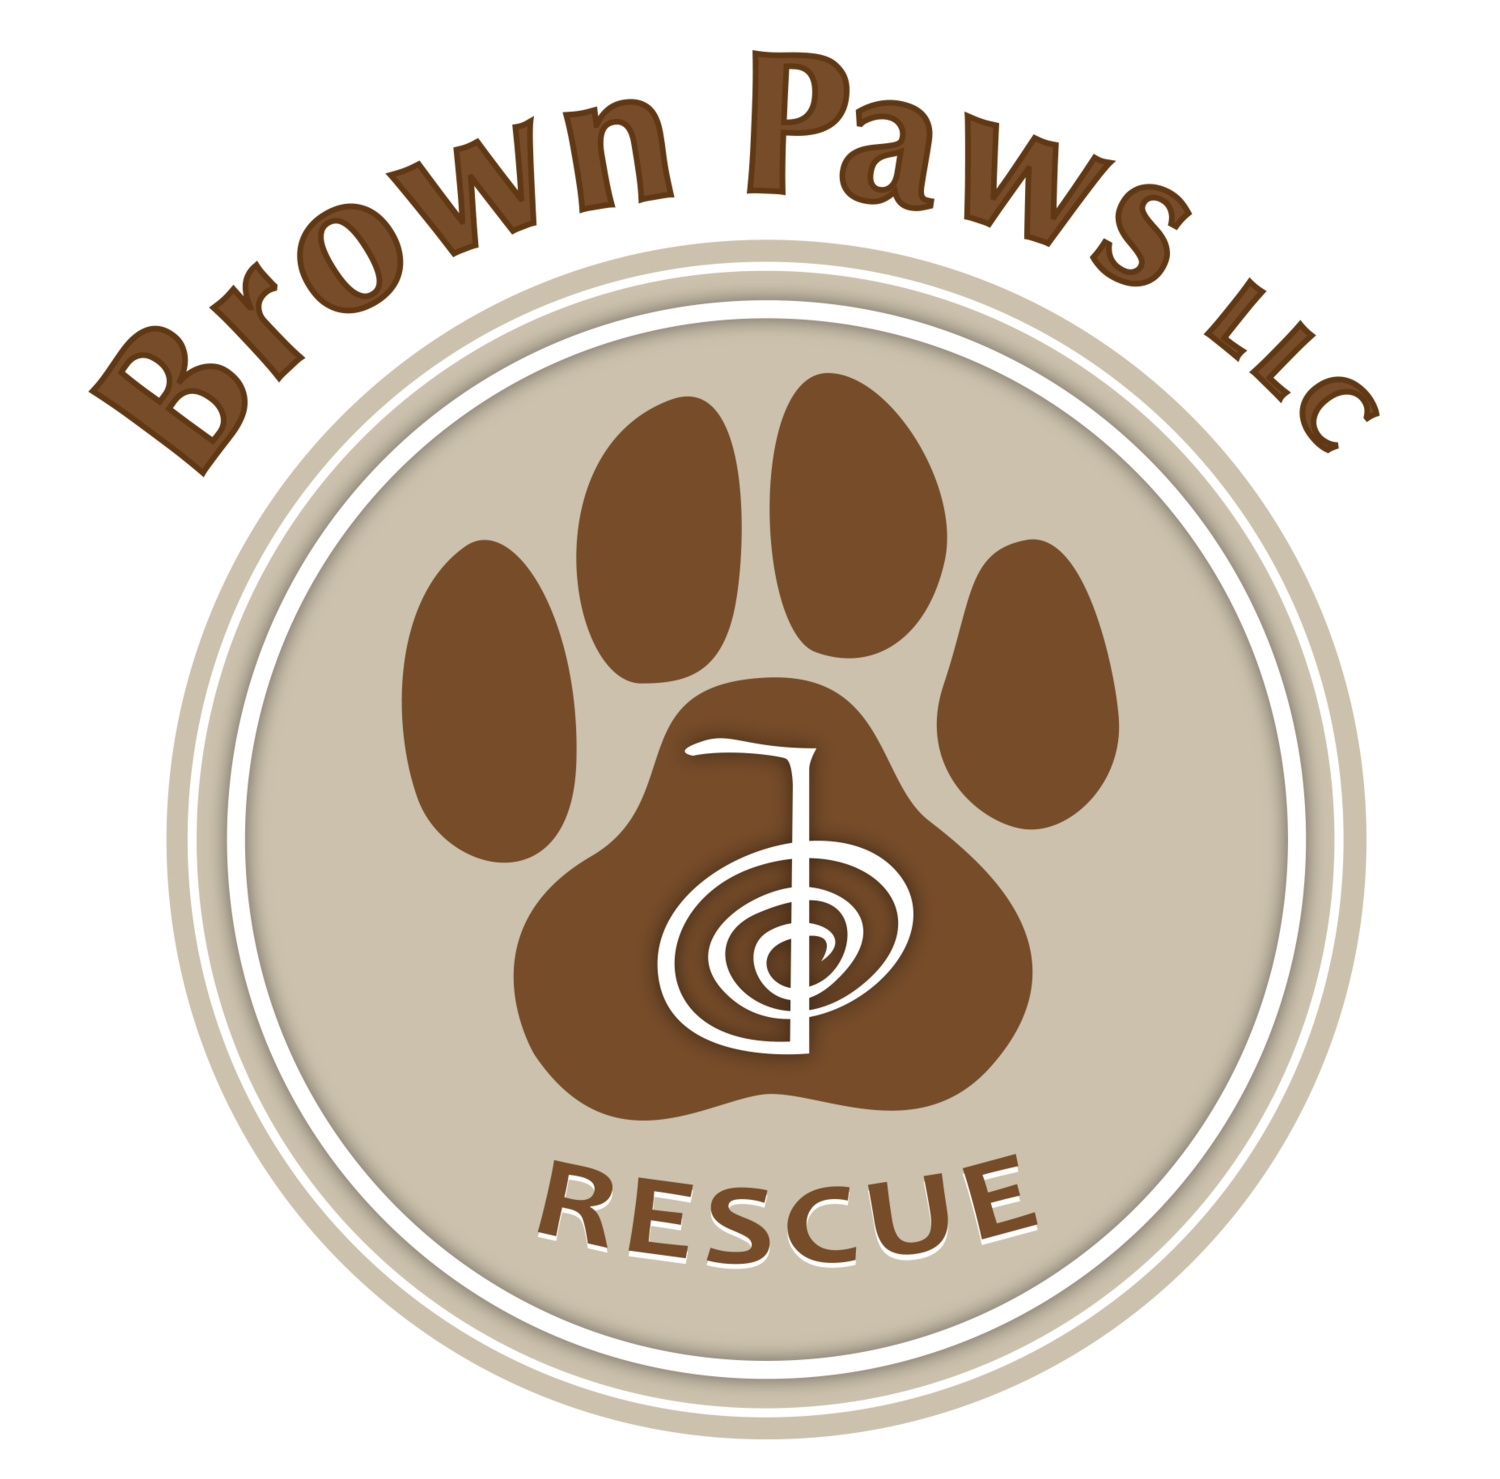 Brown Paws Rescue